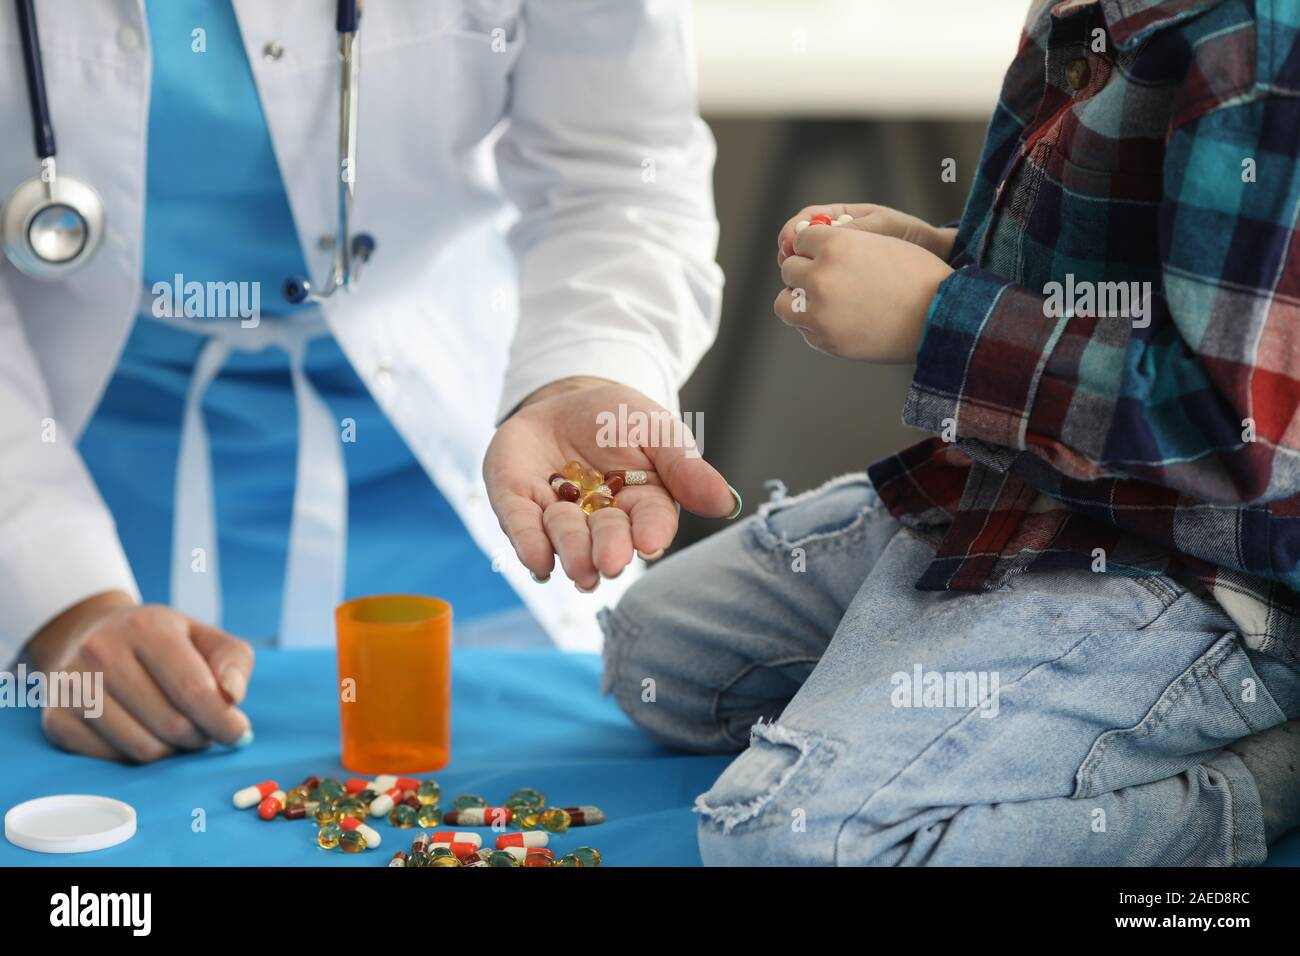 Spilled tablets on table Stock Photo